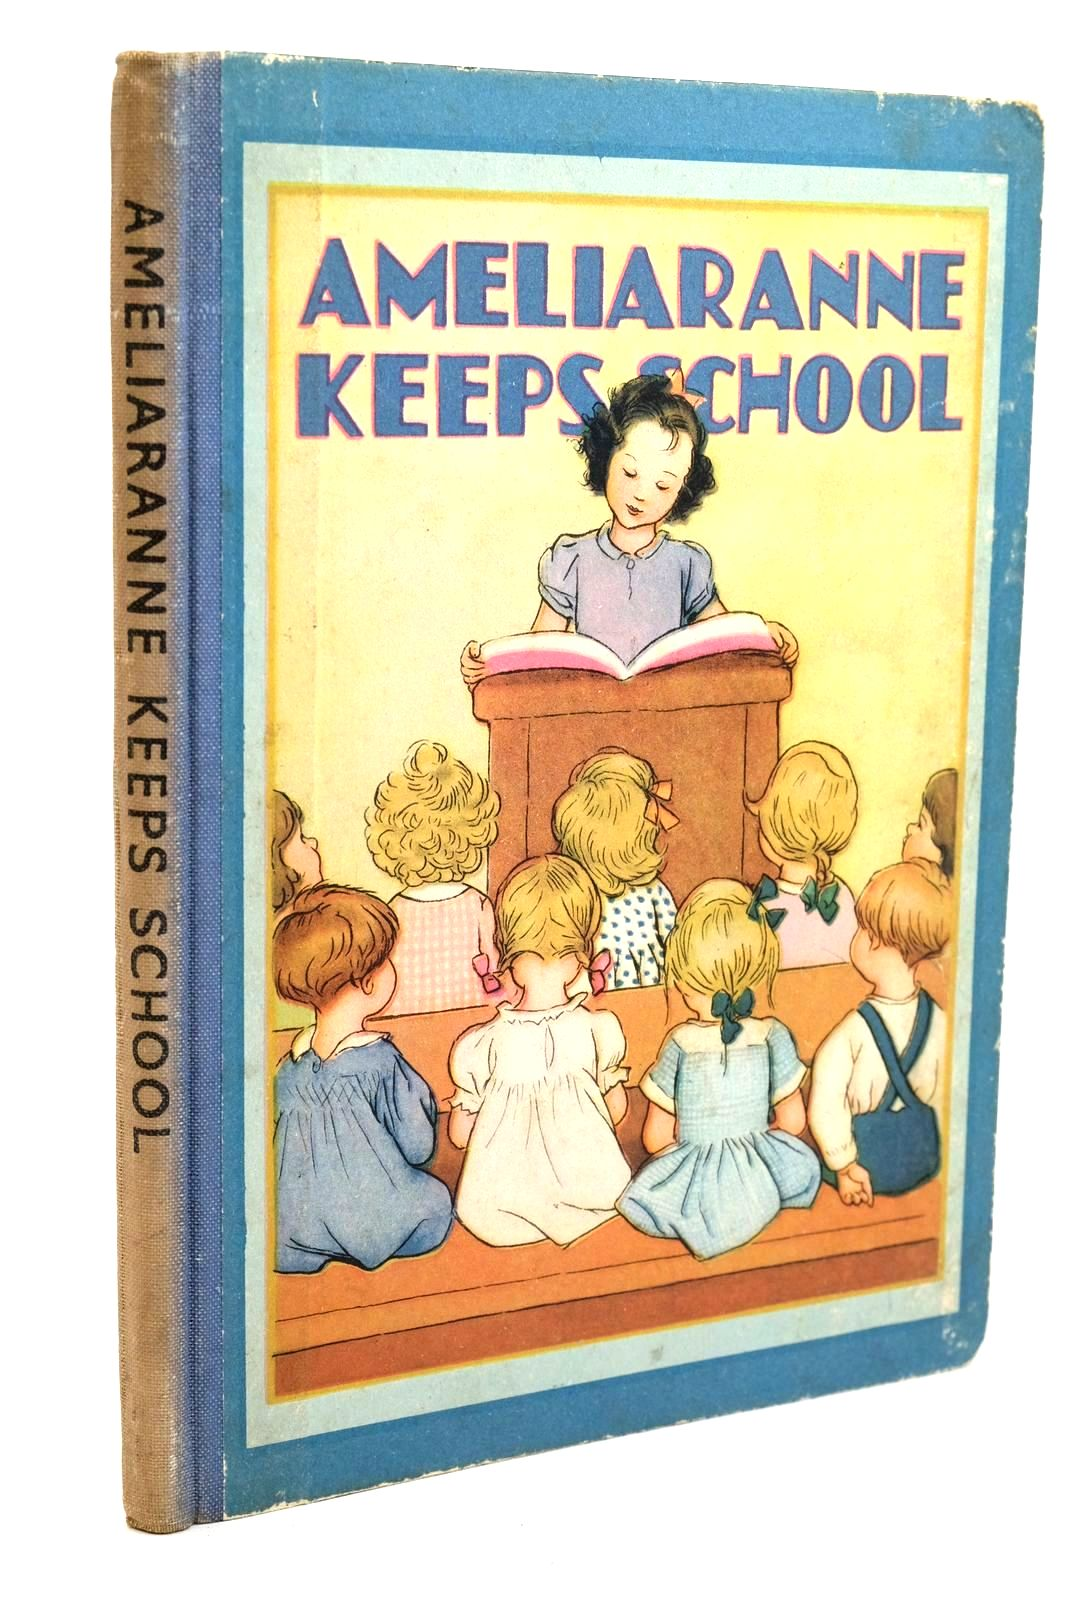 Photo of AMELIARANNE KEEPS SCHOOL written by Heward, Constance illustrated by Pearse, S.B. published by George G. Harrap & Co. Ltd. (STOCK CODE: 1320687)  for sale by Stella & Rose's Books